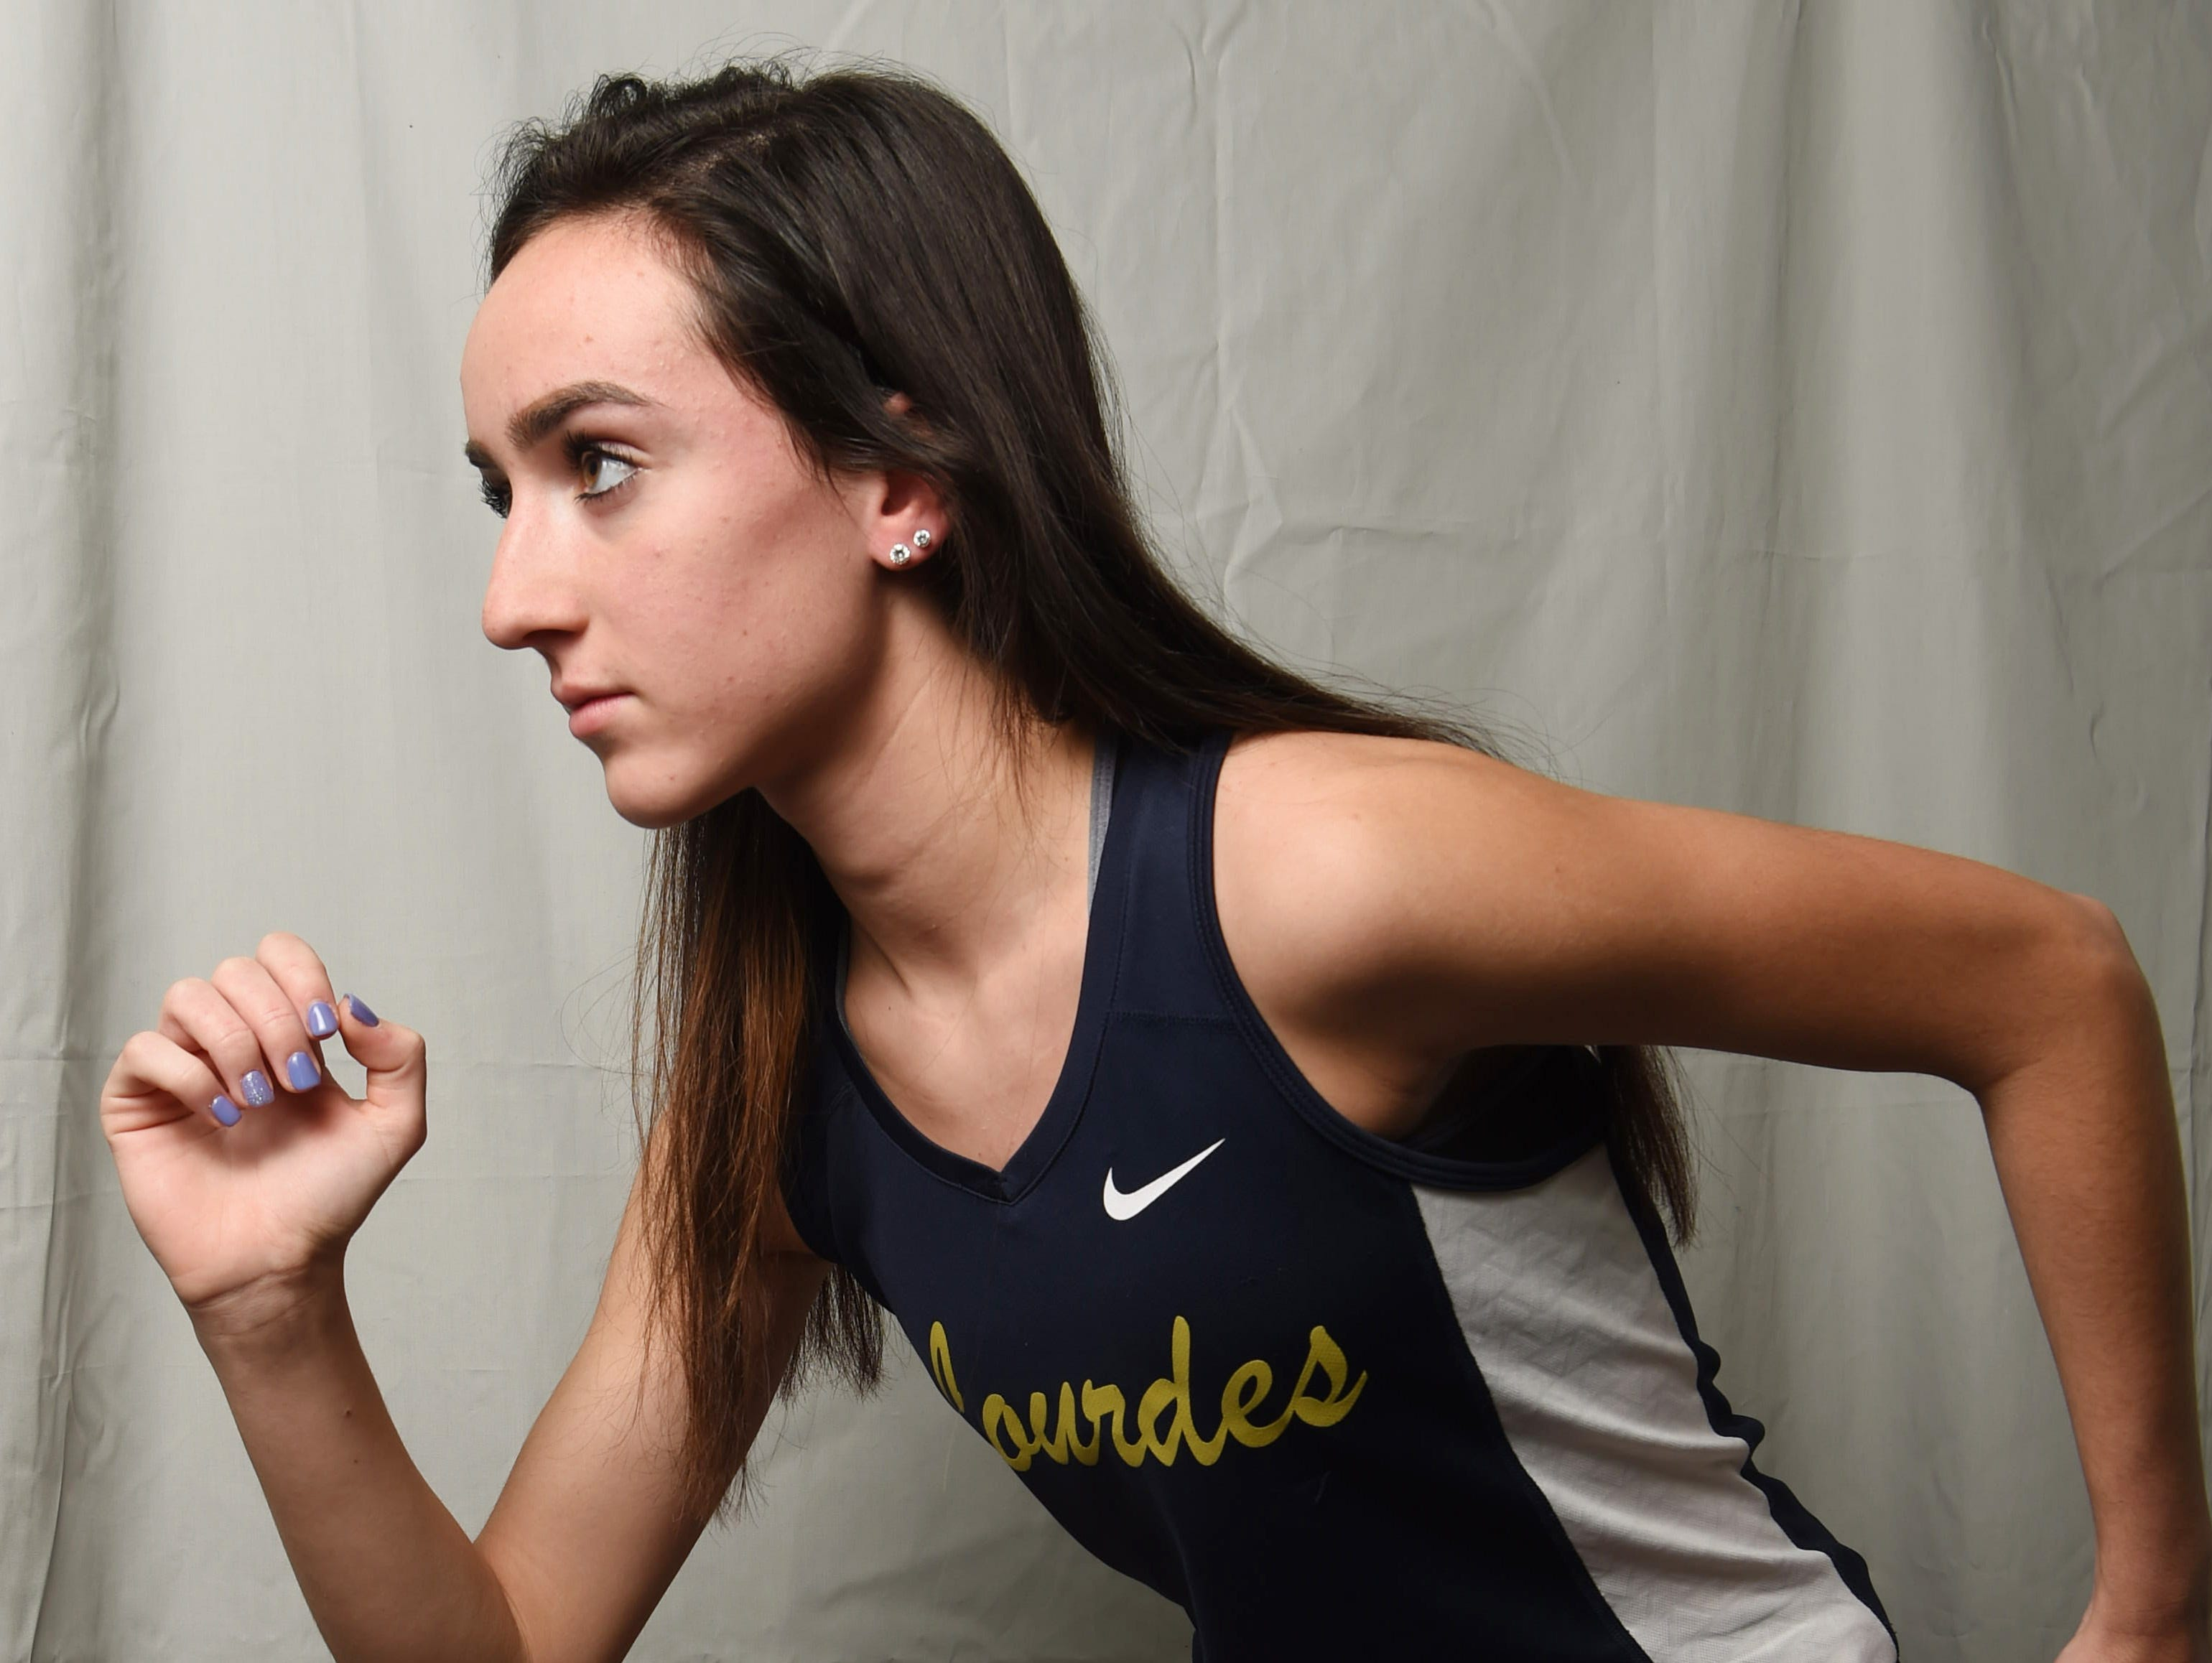 Caroline Timm from Our Lady of Lourdes High School is the Girls Runner of the Year.